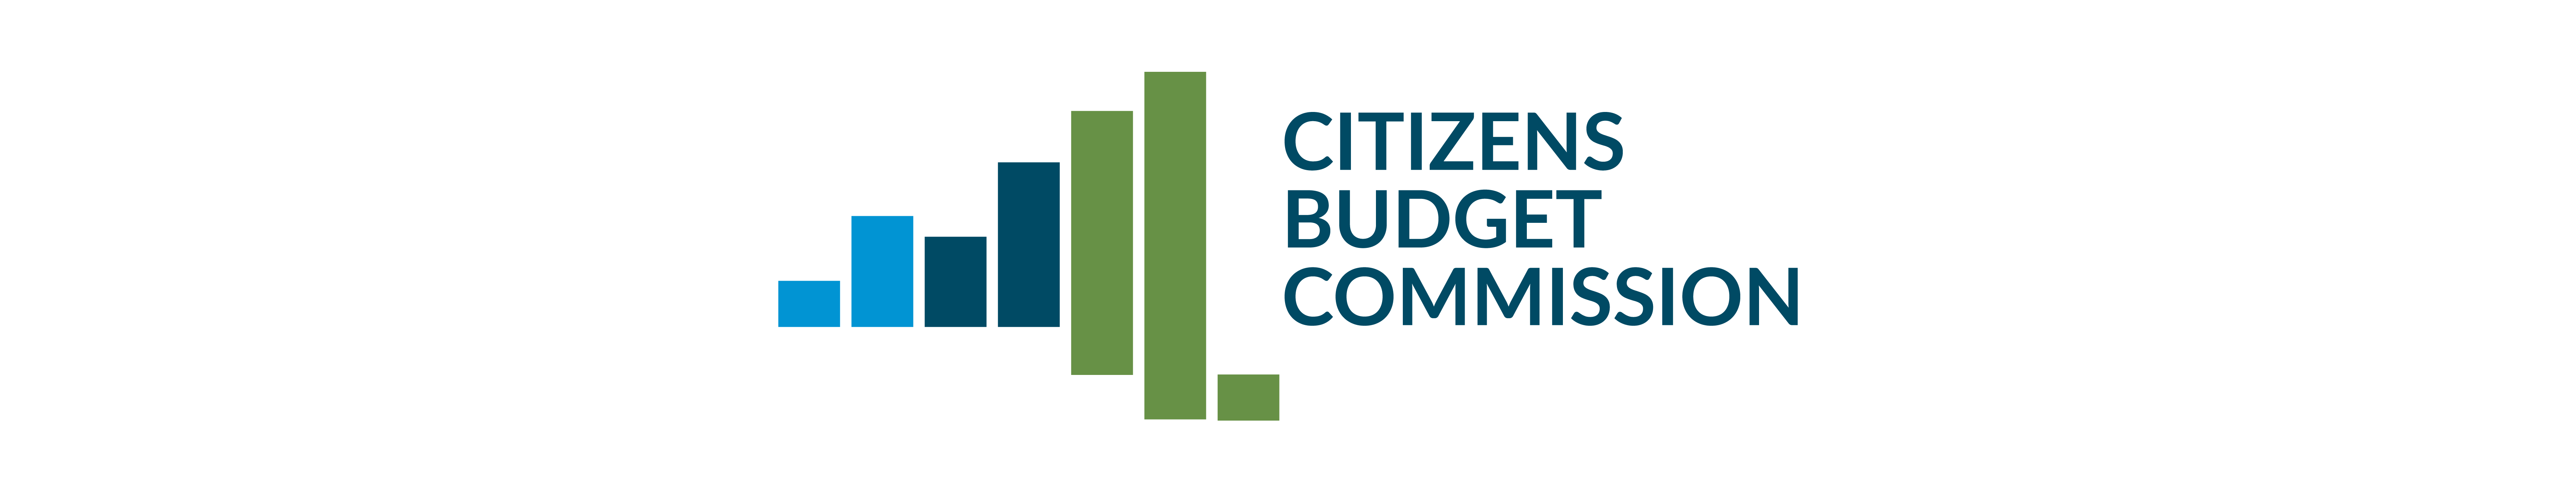 Citizens Budget Commission logo